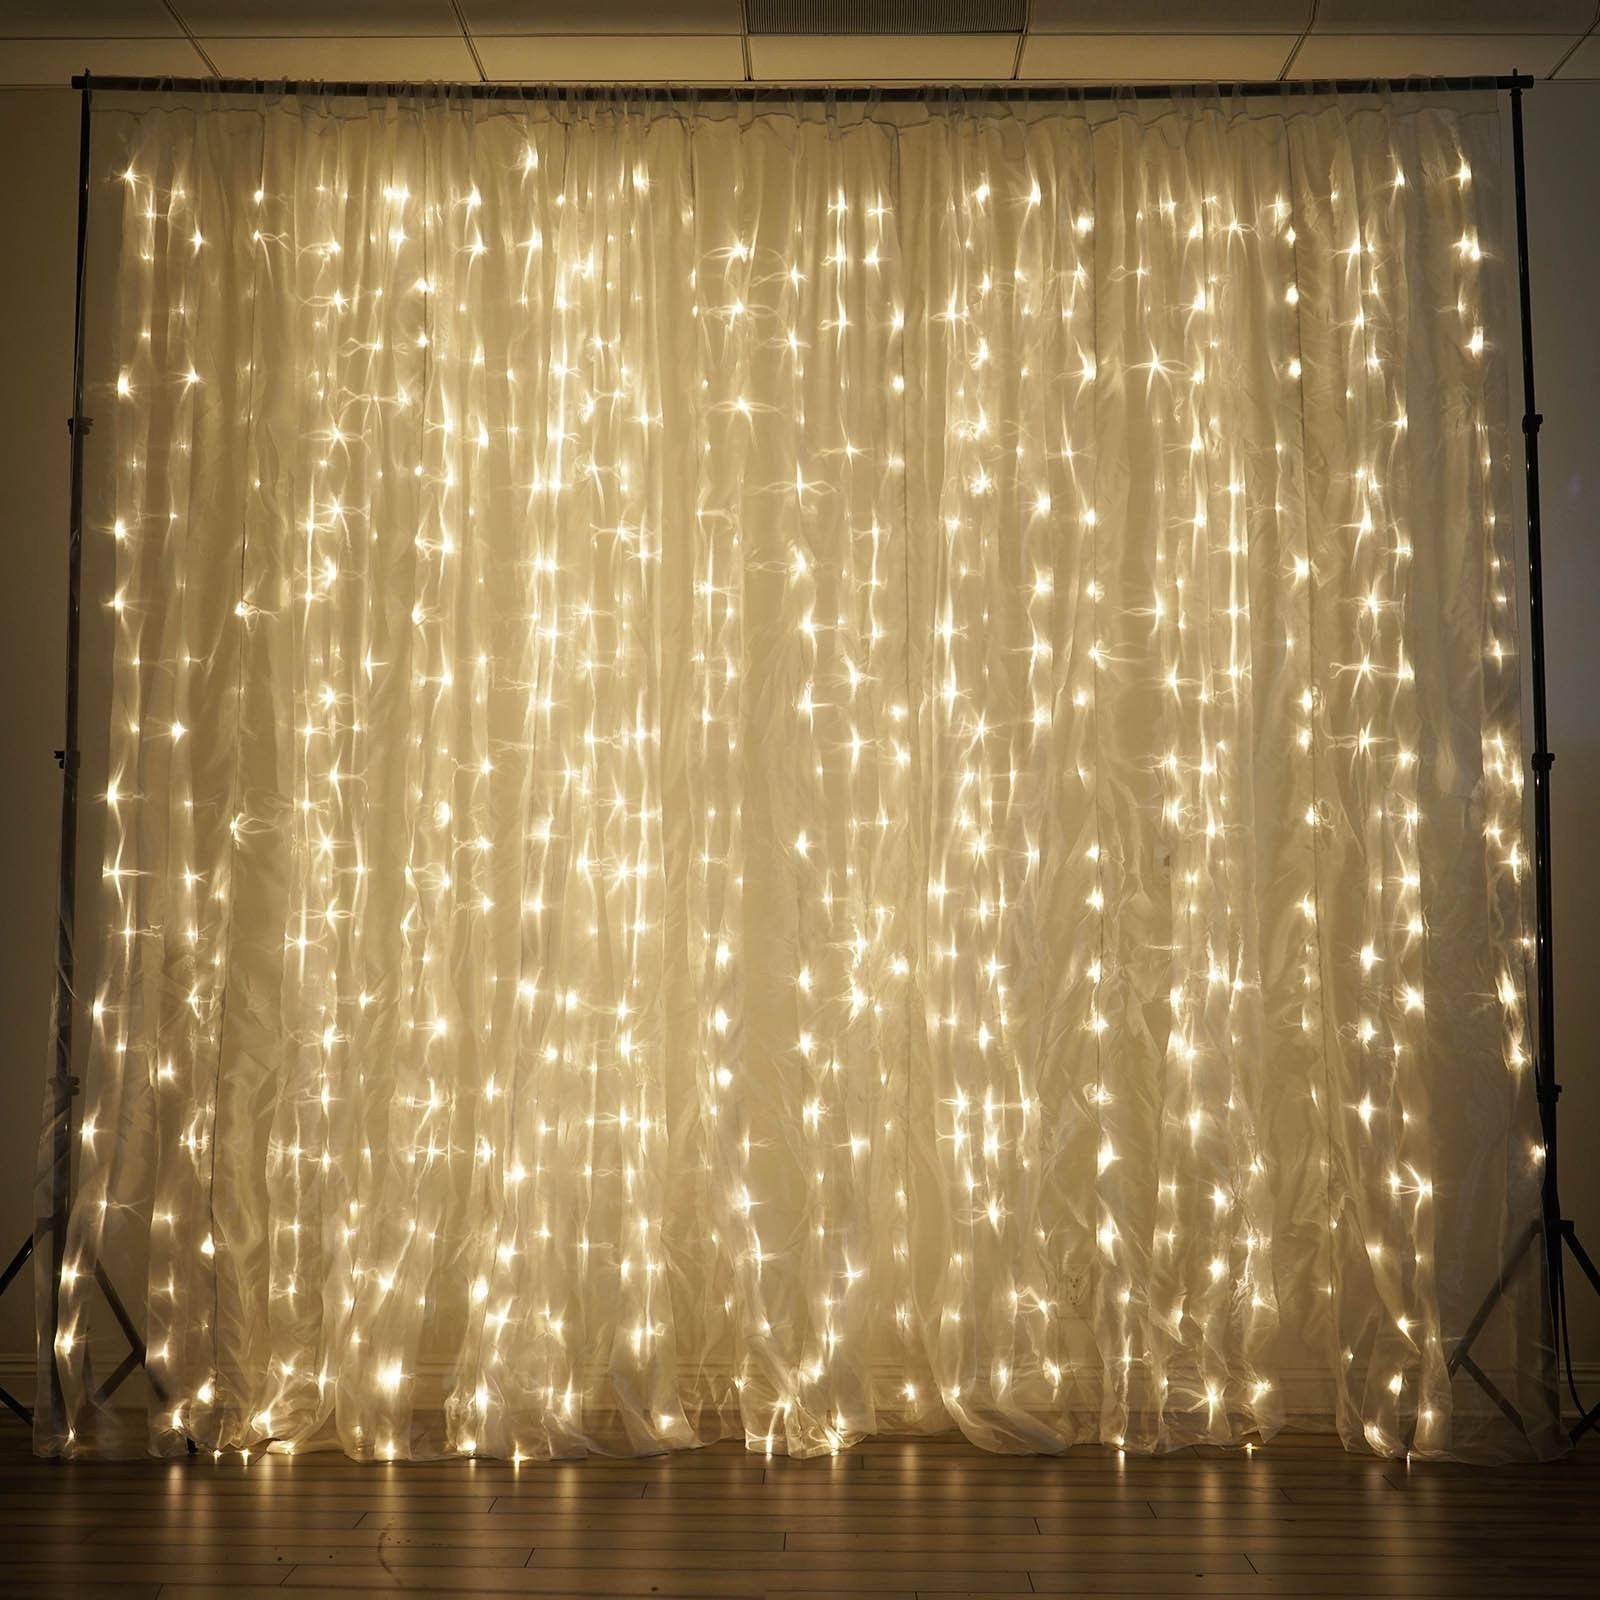 20ft X 10ft 600 Sequential Warm White Led Lights Big Photography